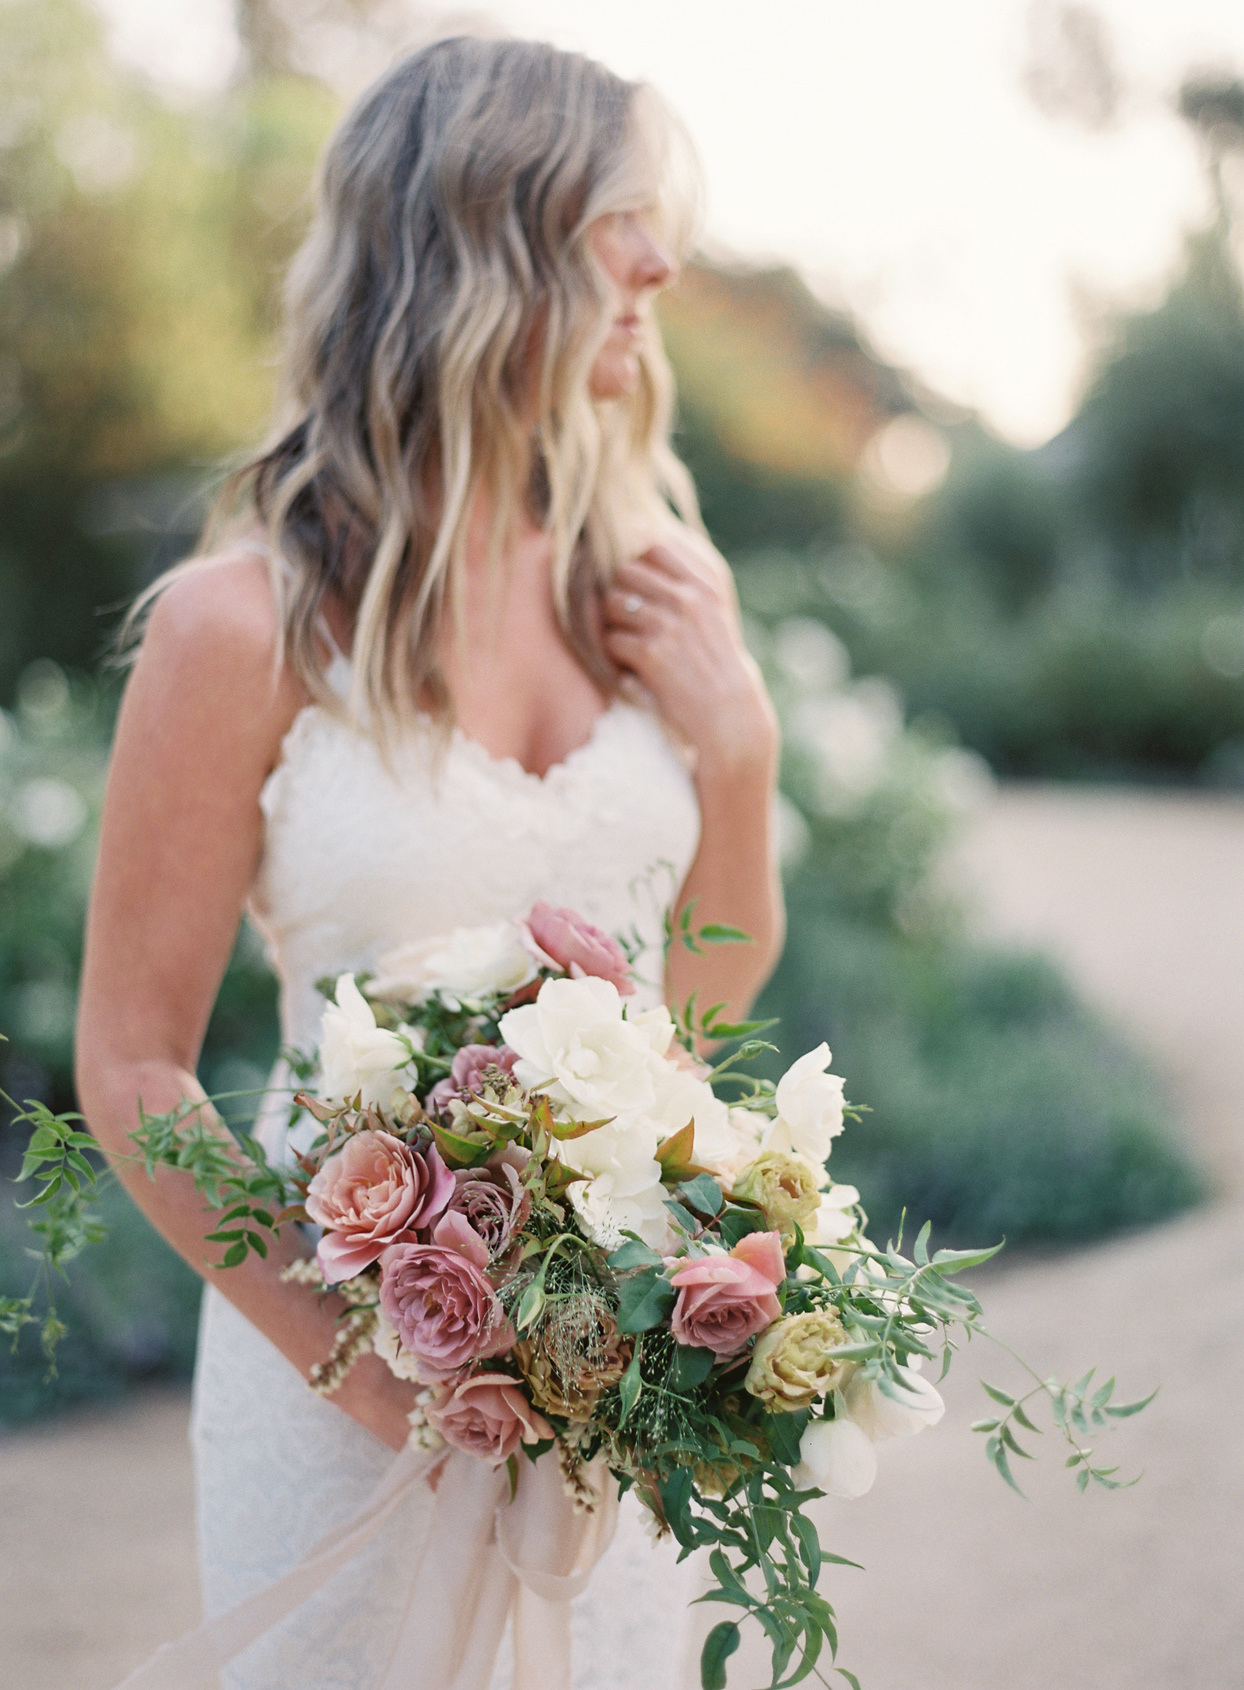 Bride with bouquet made up of blush flowers and greenery